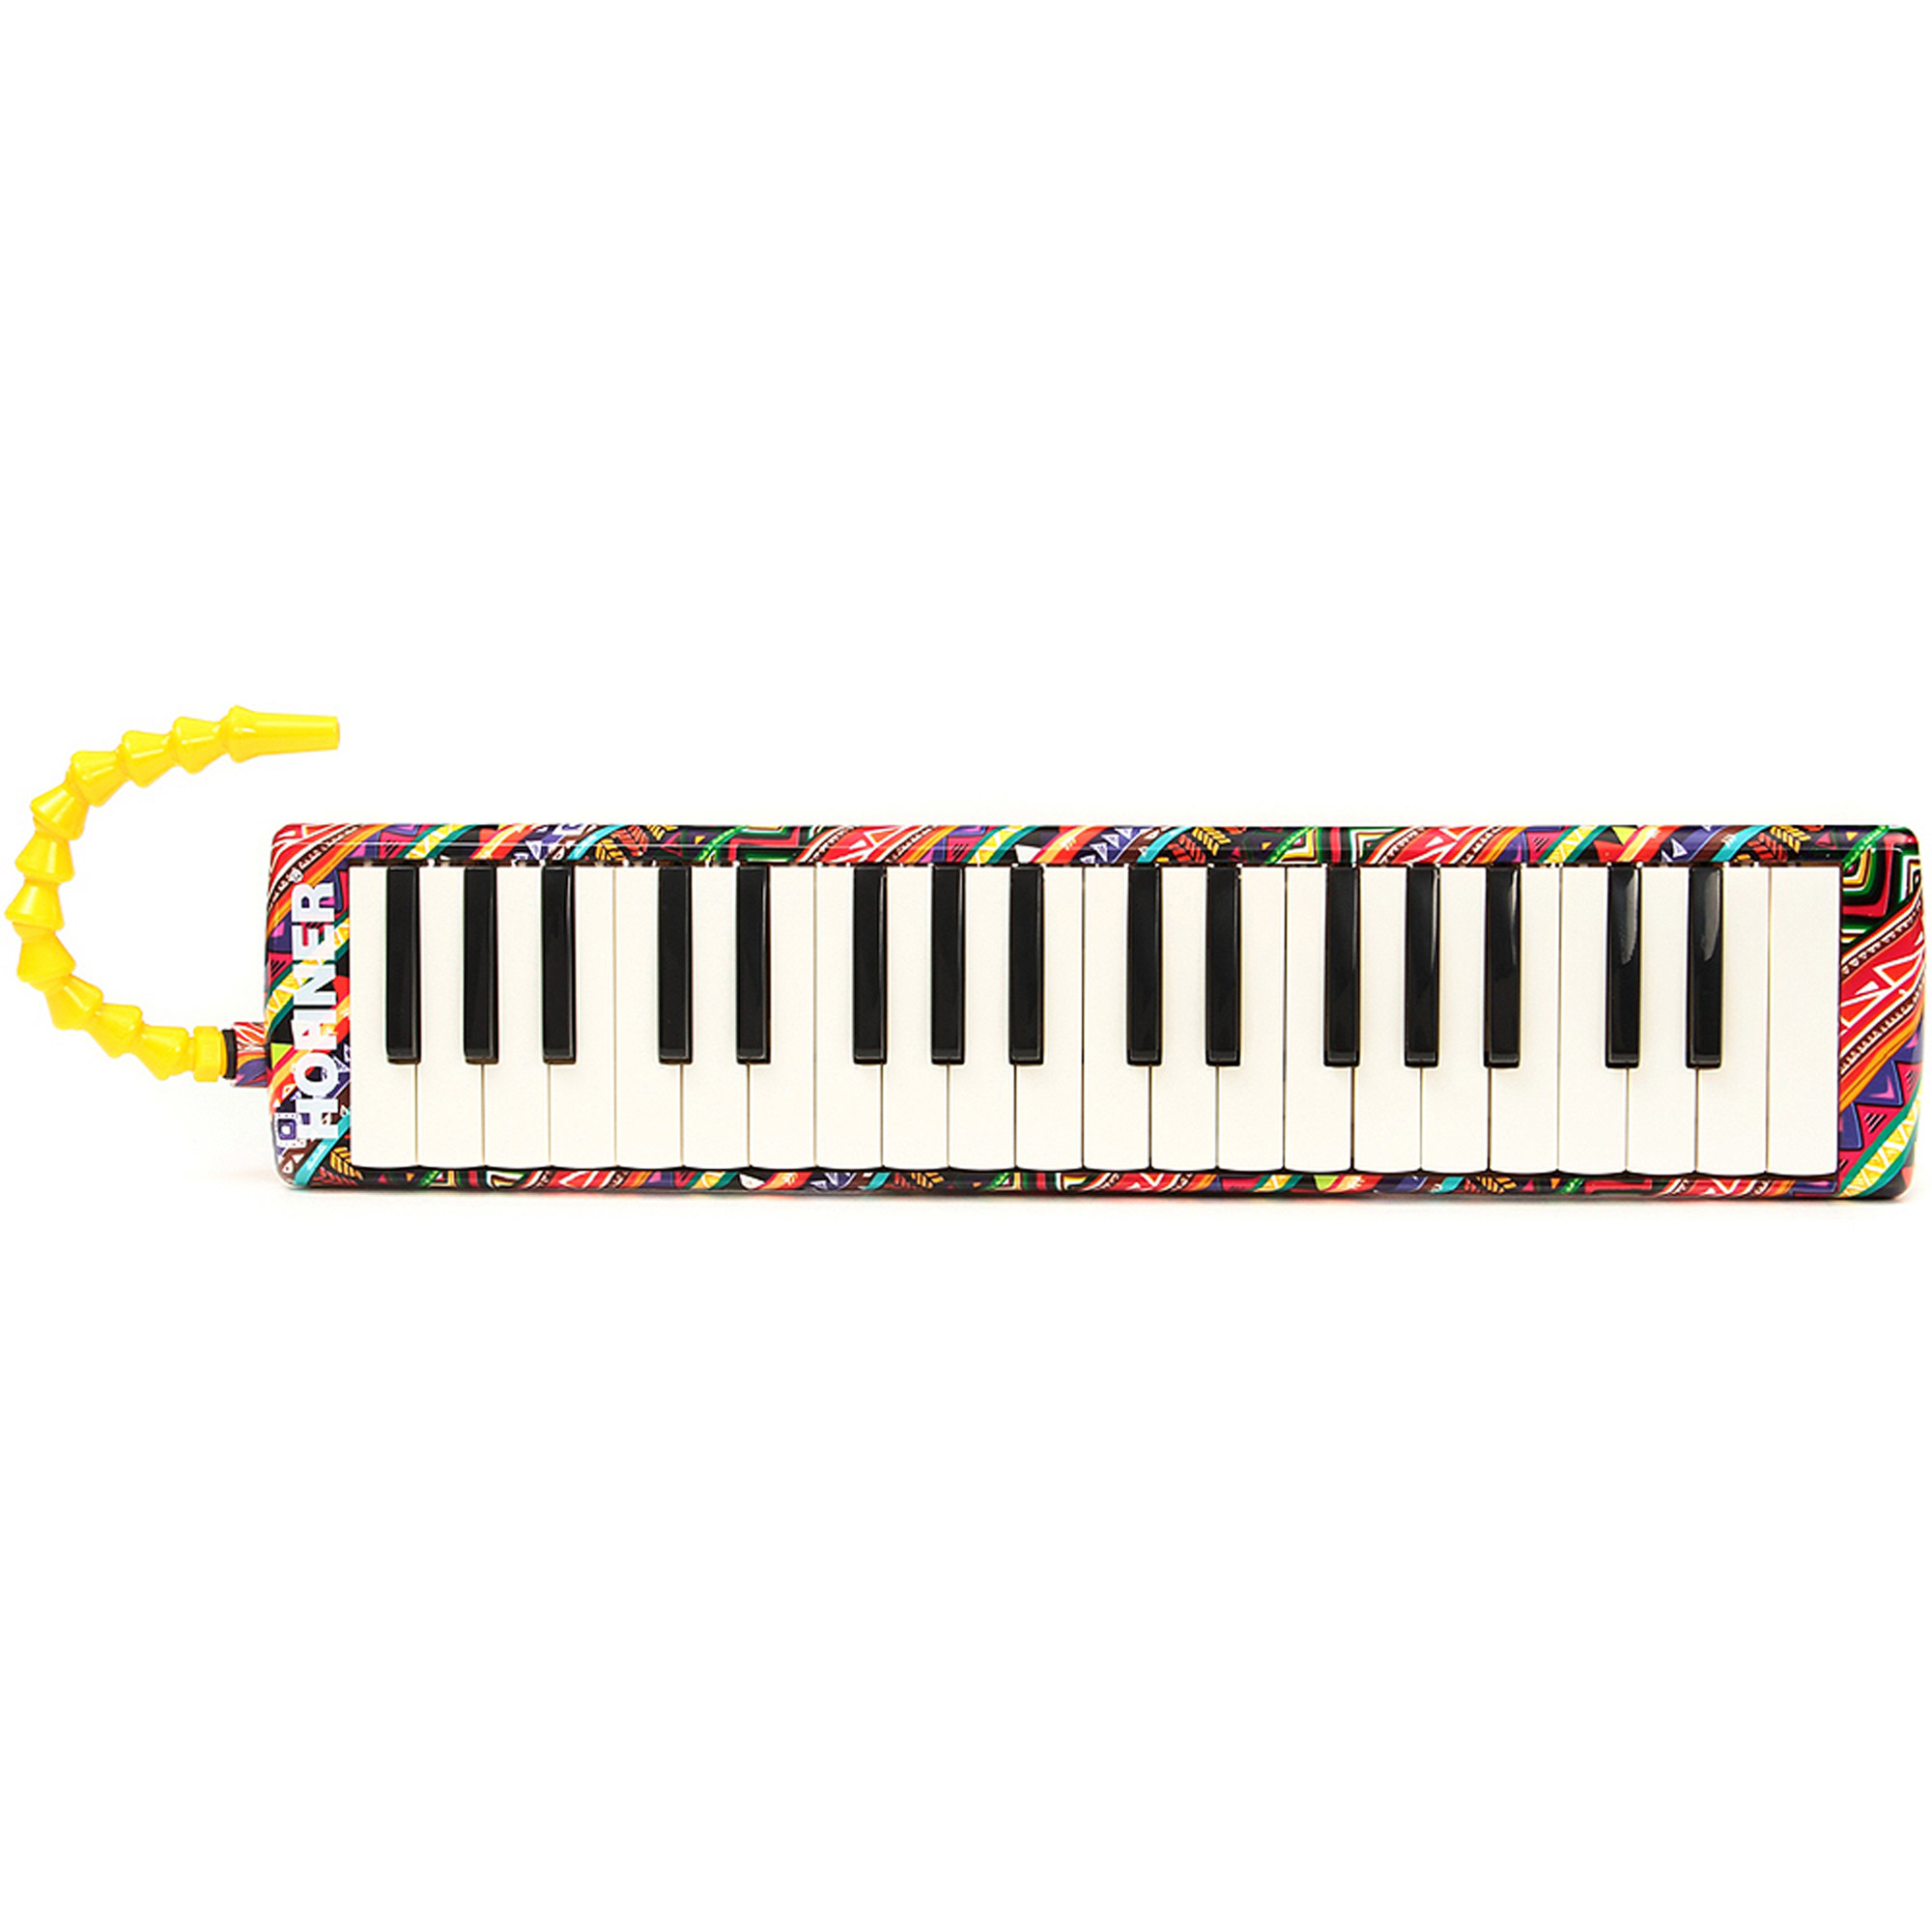 Hohner 37 Key Airboard with Bag